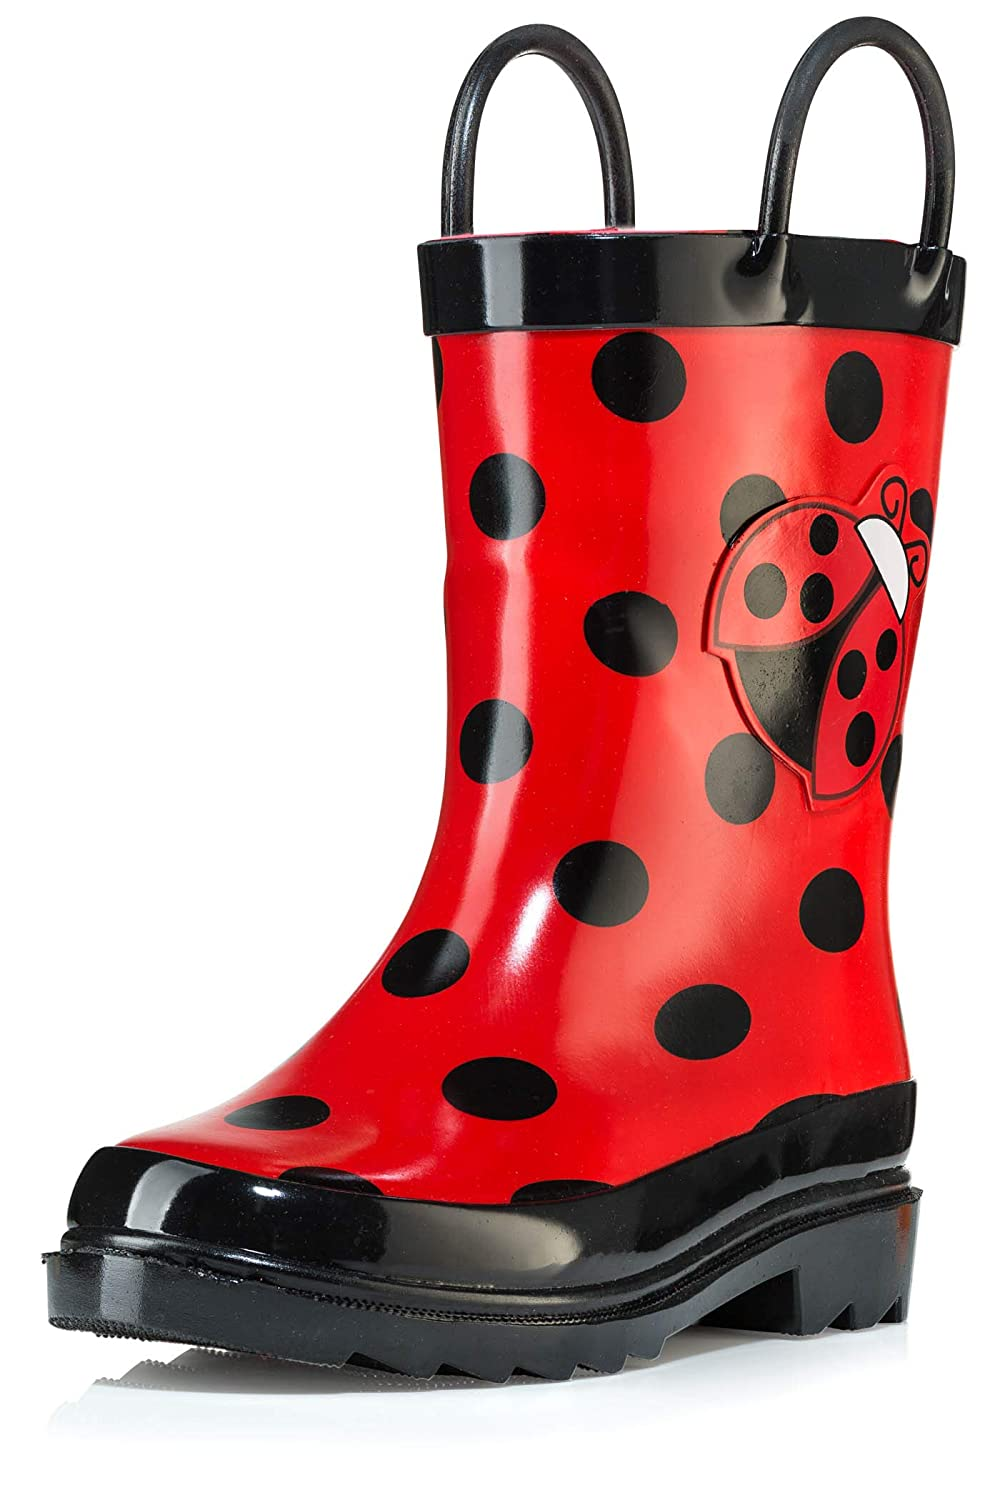 7c1b1637d00 Puddle Play Kids Girls' Ladybug Printed Waterproof Easy-On Rubber Rain  Boots (Toddler/Little Kids)